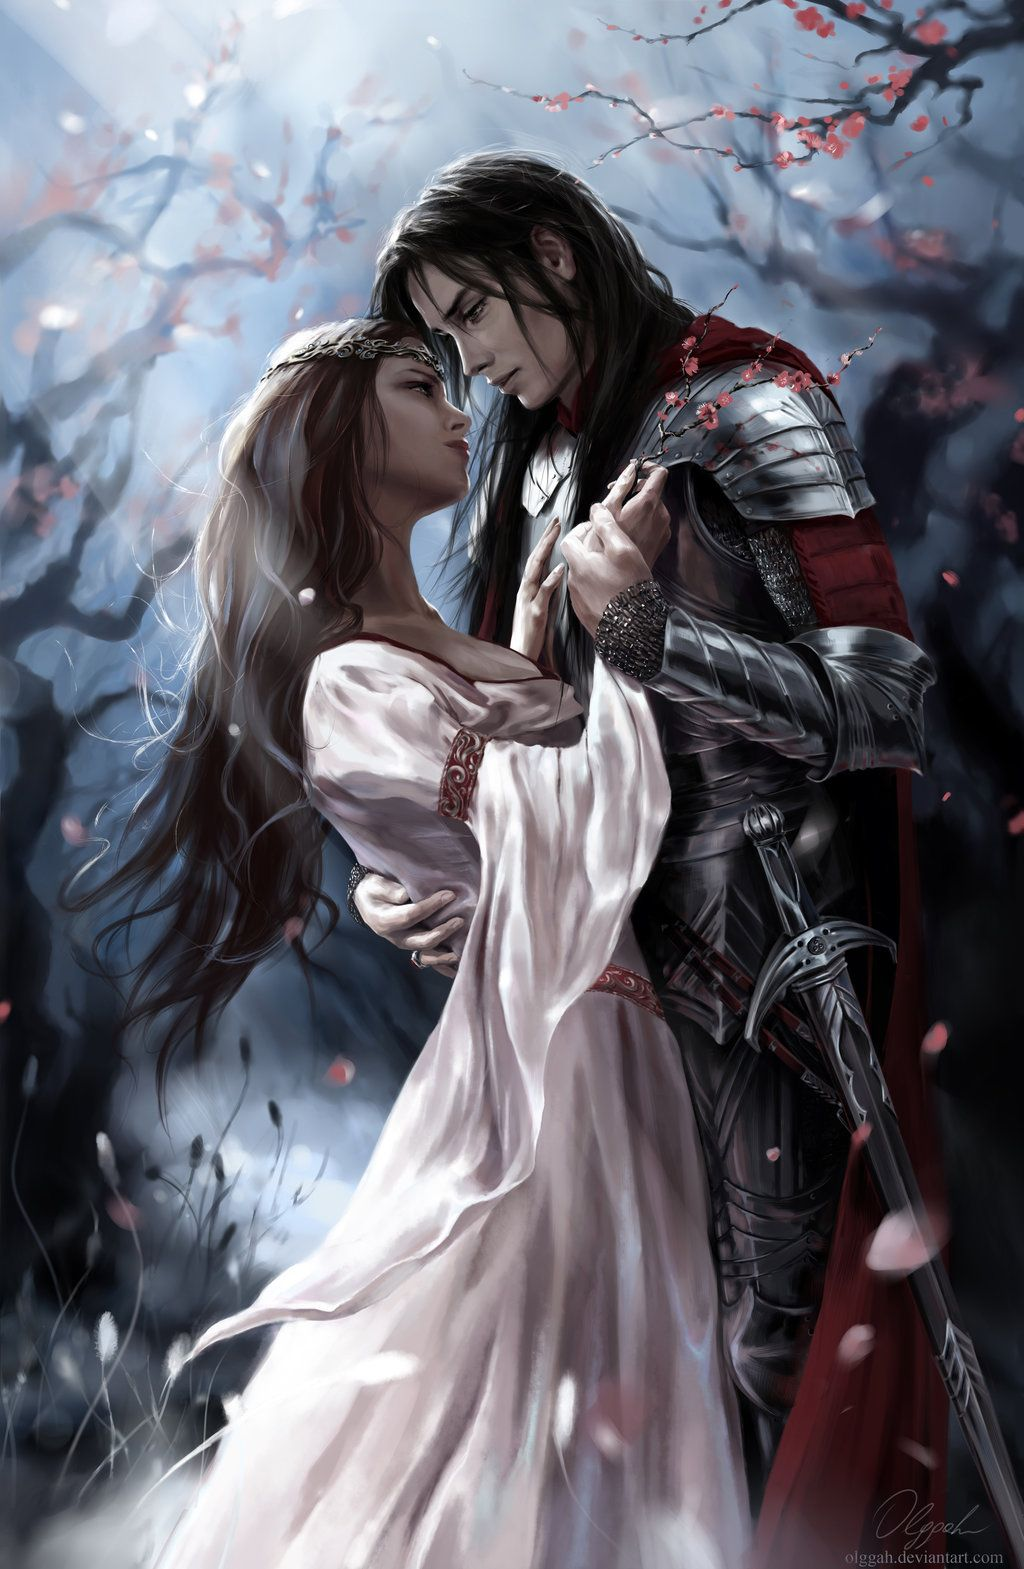 Lancelot And Guinevere By Olggah On Deviantart In 2019